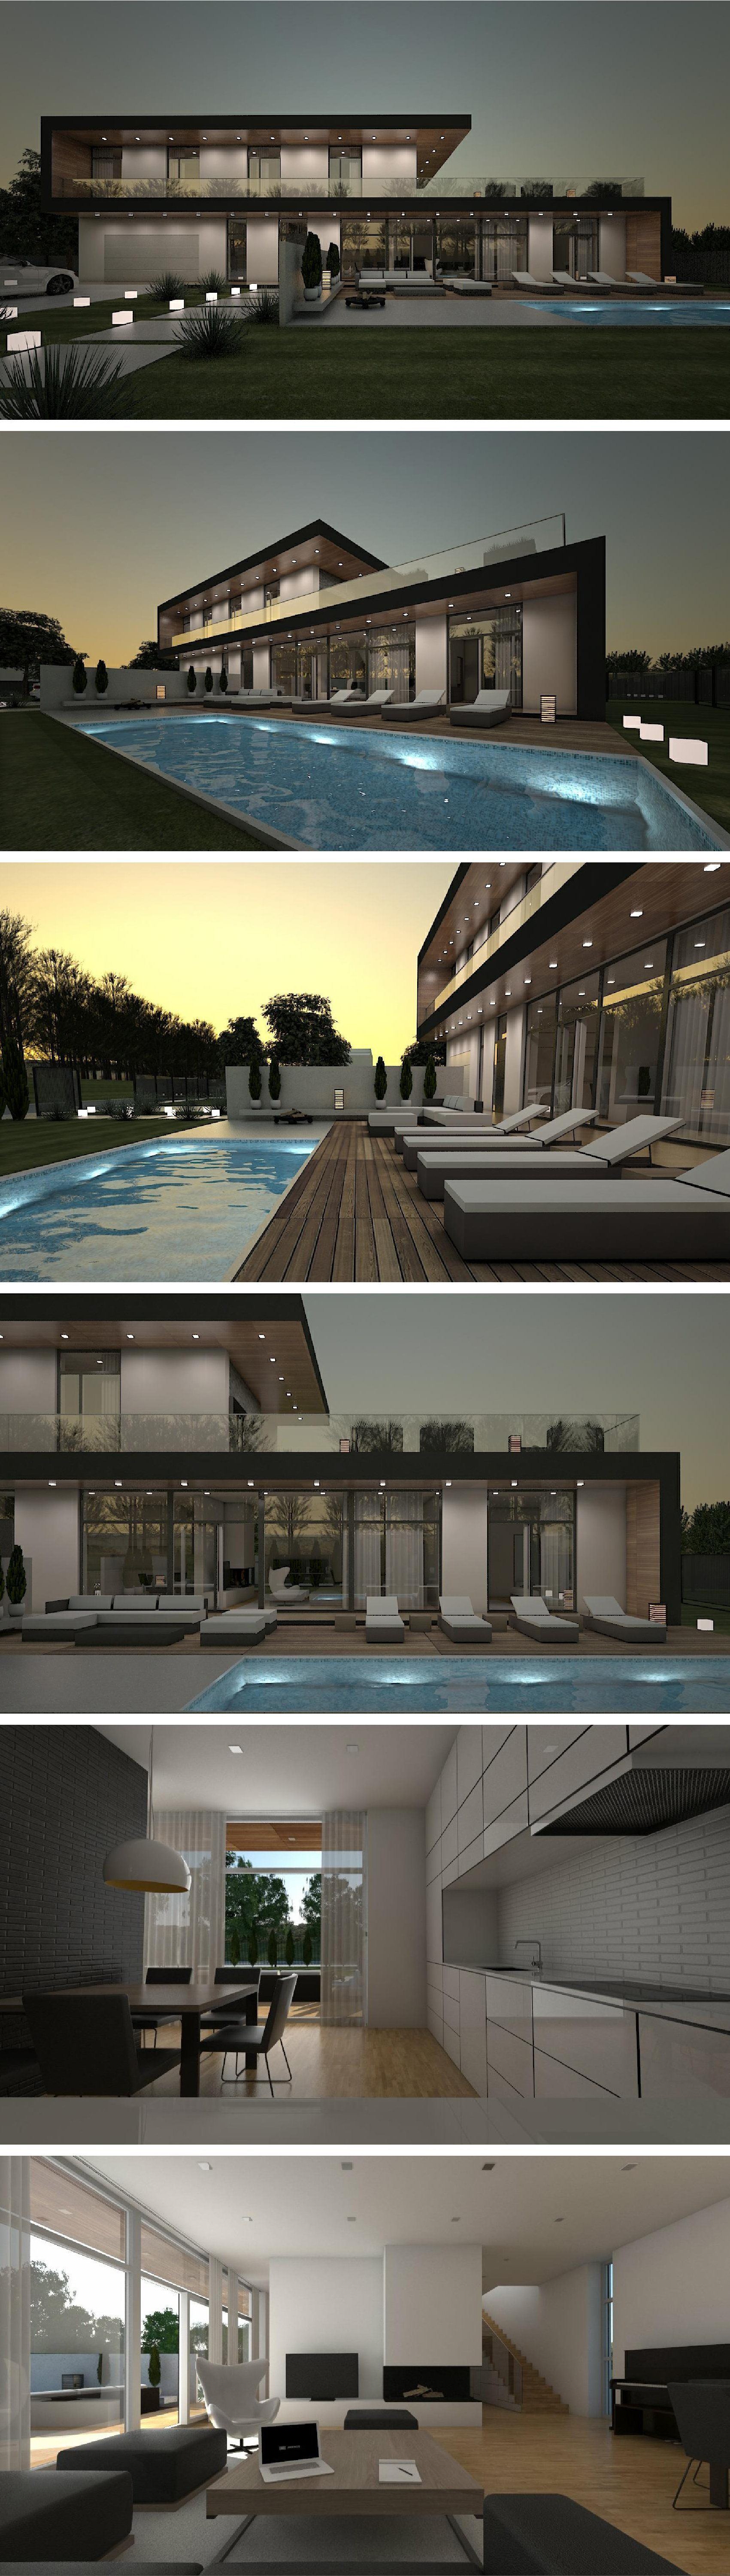 ☆Free Download Architecture Rendering Pictures V 5 | ☆Free